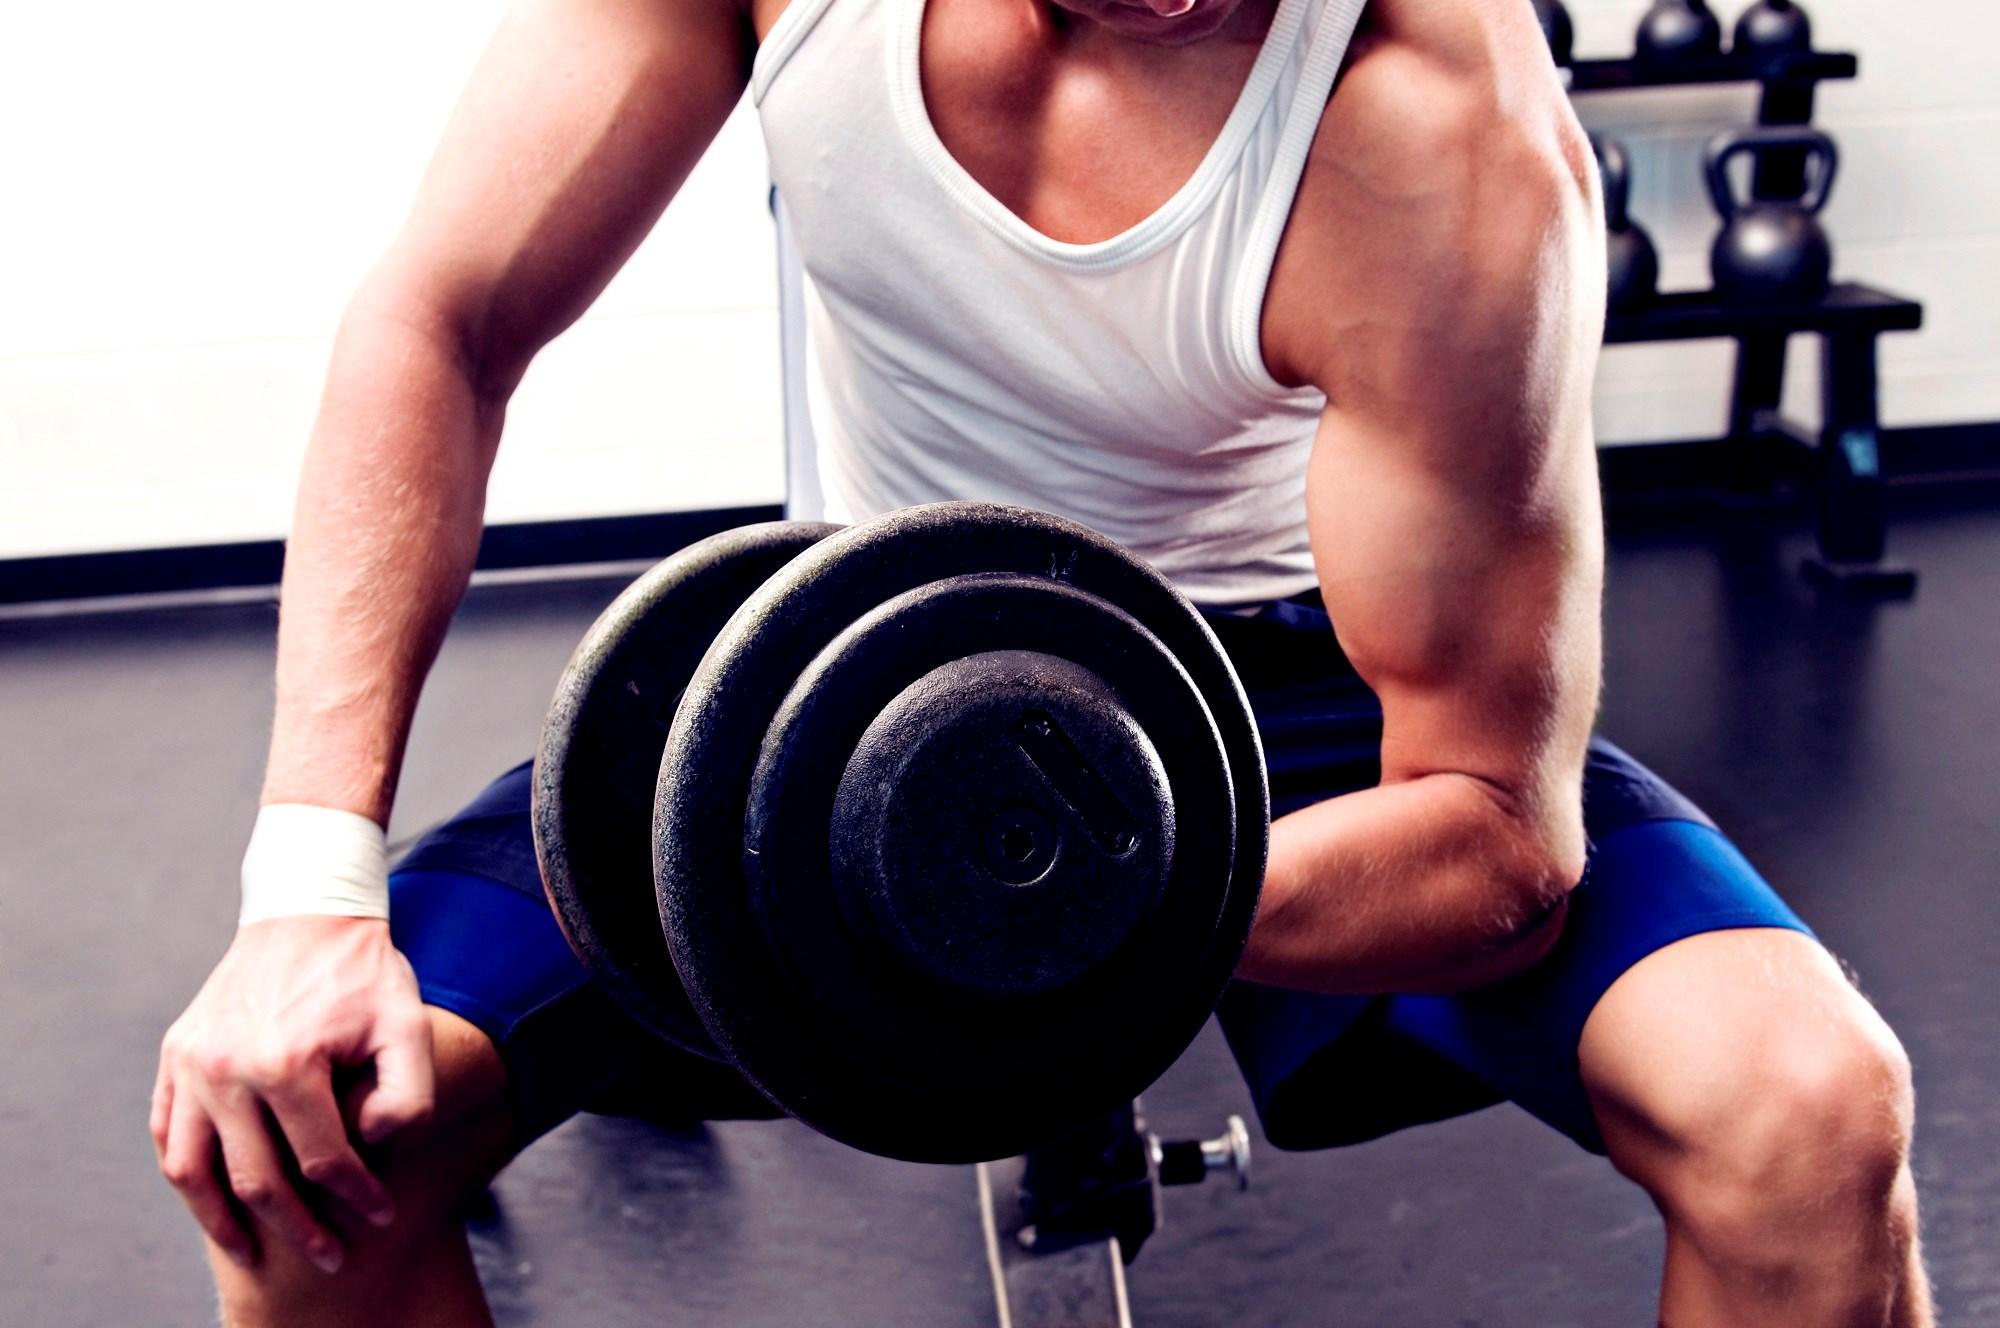 Health Risks Associated With Androgenic Anabolic Steroid Use in Men